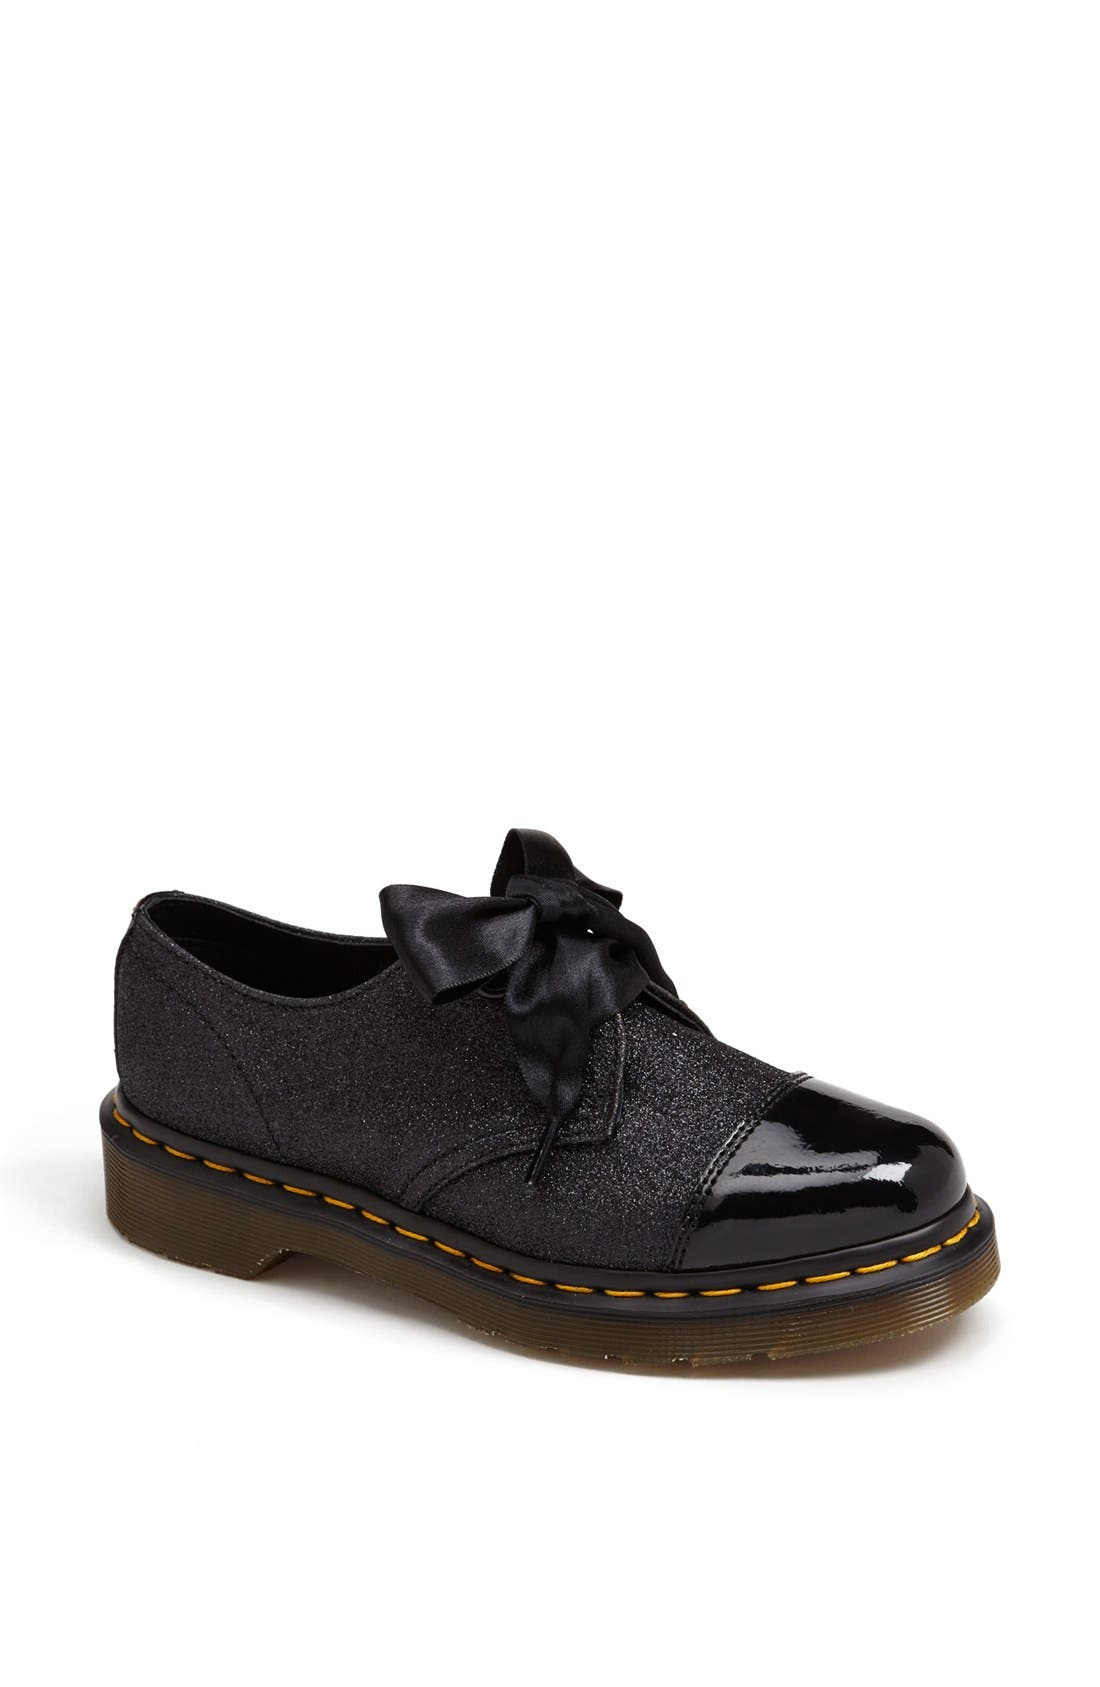 Main Image - Dr. Martens 'Bow' Cap Toe Oxford